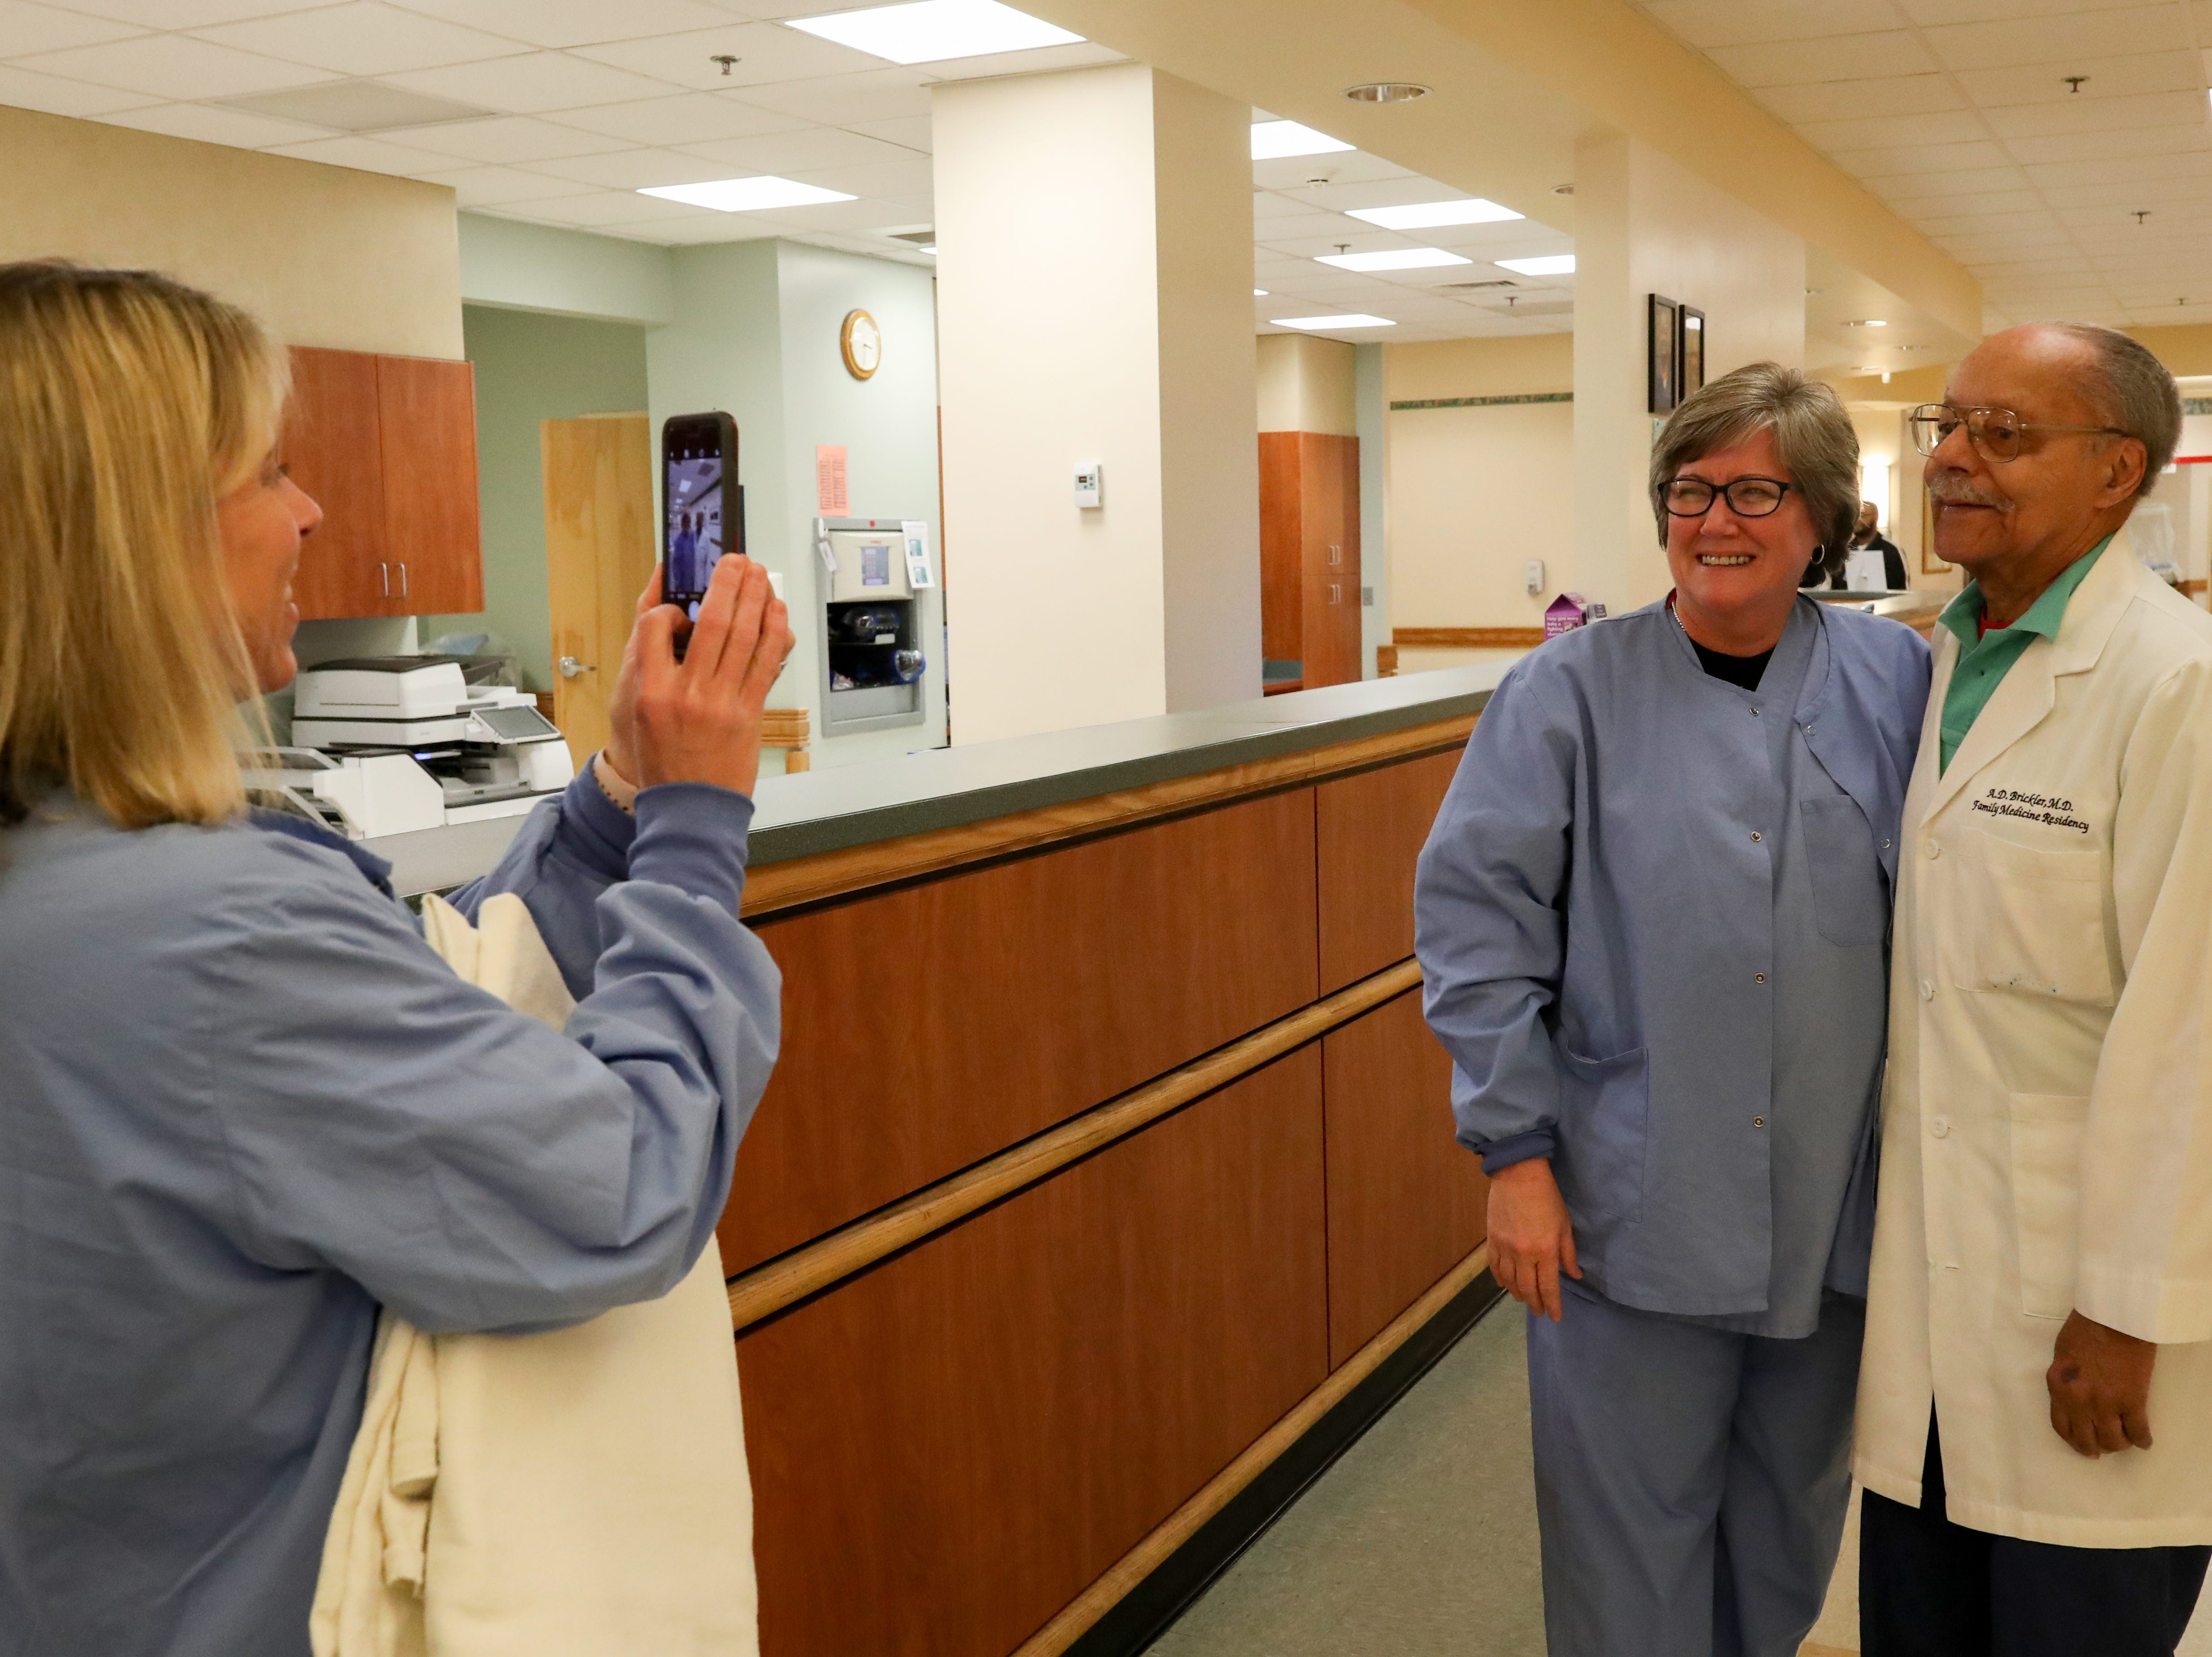 Registered Nurse Terrie Hutto asks to have her photo taken with Dr. A.D. Brickler, 90, who is retiring from Tallahassee Memorial Hospital where he is estimated to have delivered over 30,000 babies.